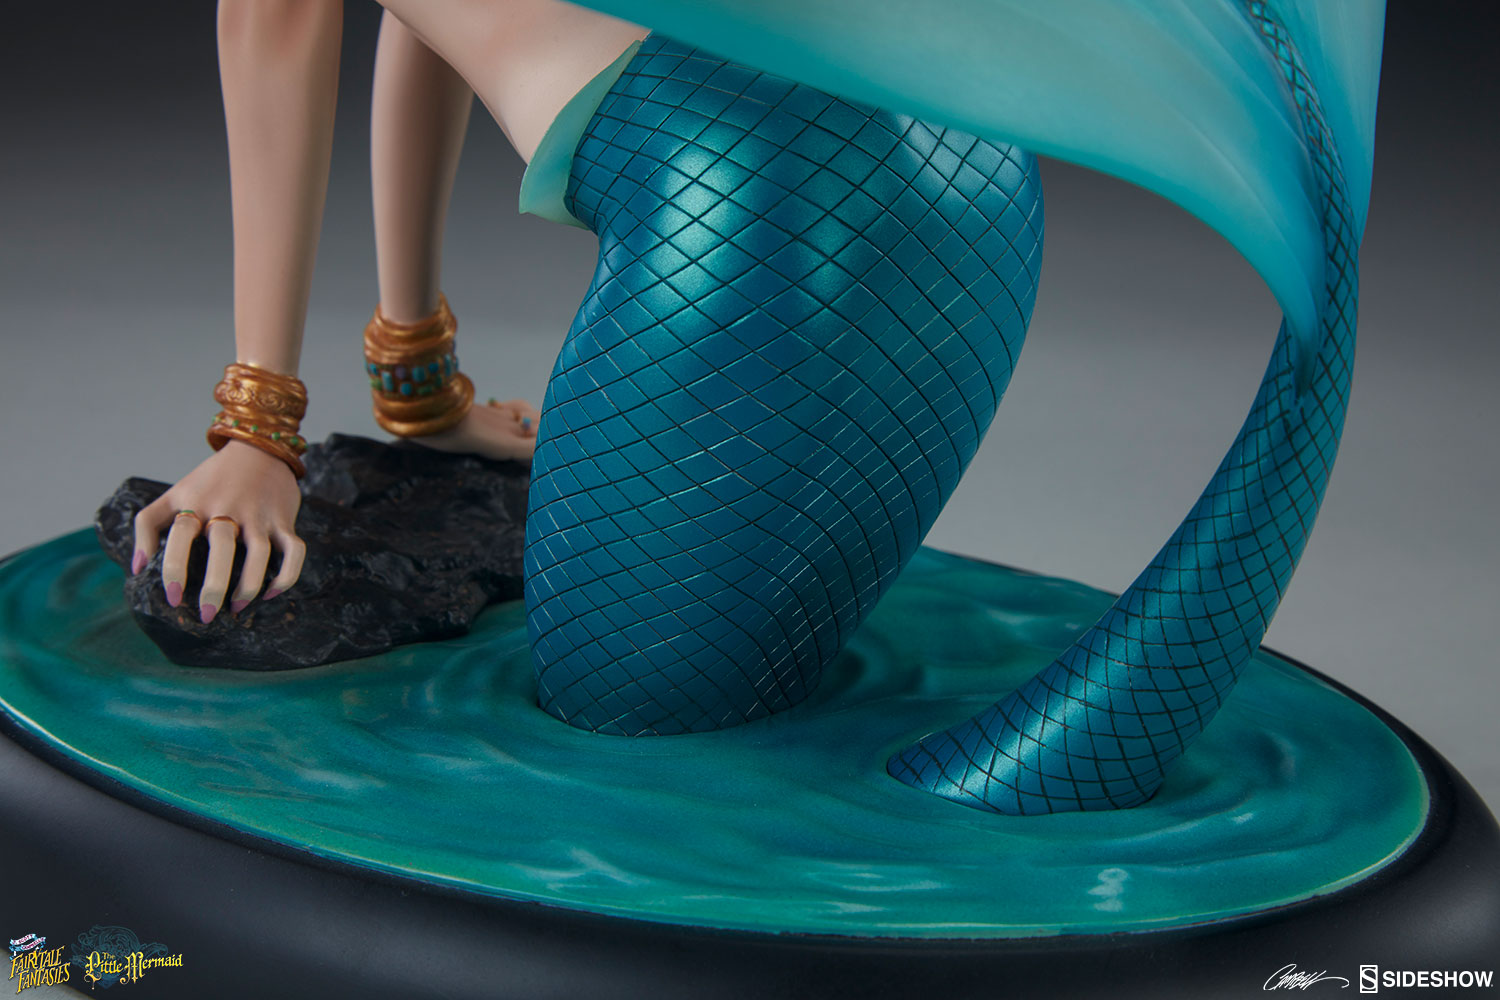 J Scott Campbell The Little Mermaid Statue by Sideshow Colle     The Little Mermaid Statue The Little Mermaid Statue